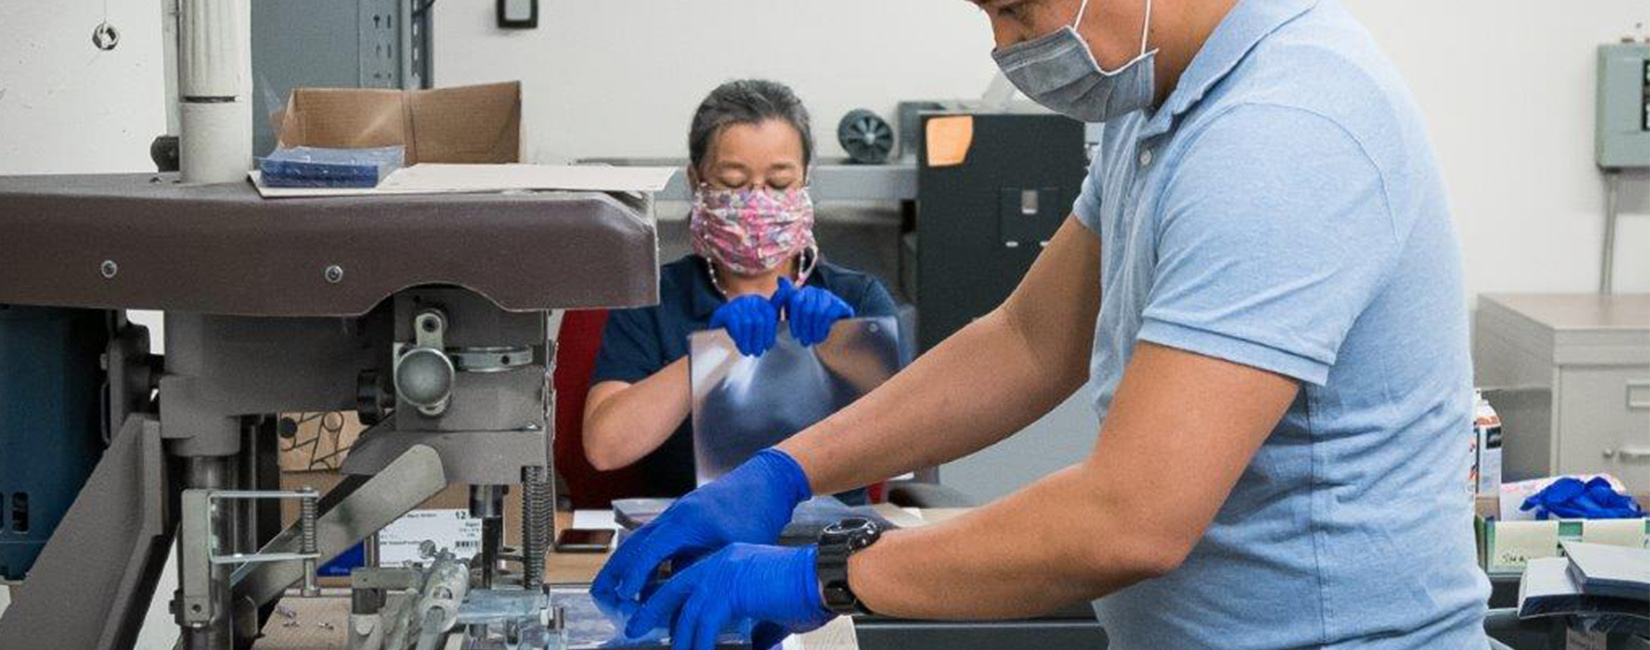 Workers at U of California San Francisco work on creating COVID face shields.